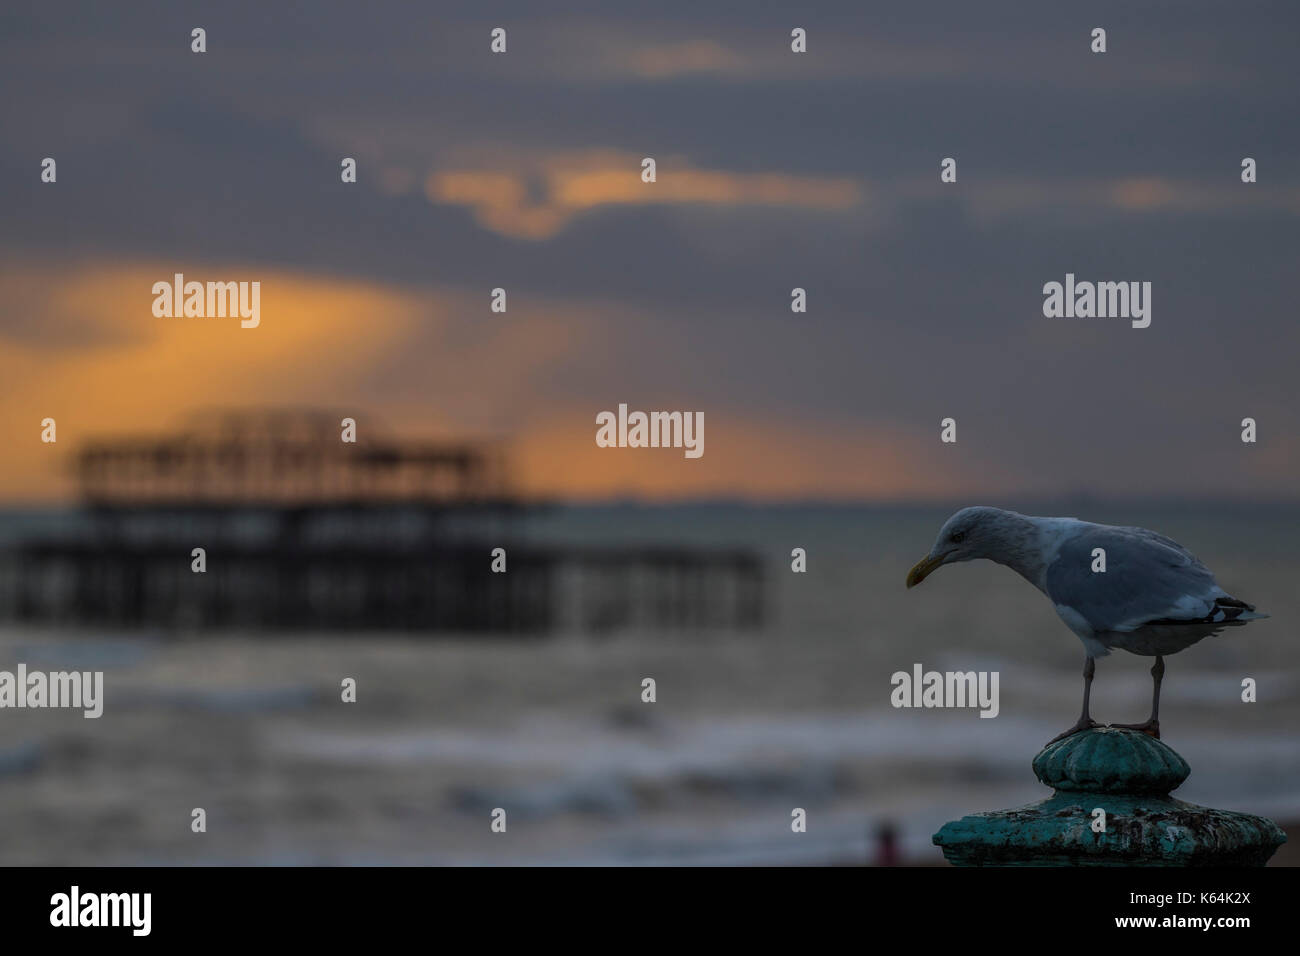 Brighton, UK. 11th Sep, 2017. UK Weather. The sunset breaks through the clouds over the remains of the old pier watched by unimpressed seagulls - Dusk on a blustery evening on Brighton Beach. Credit: Guy Bell/Alamy Live News - Stock Image